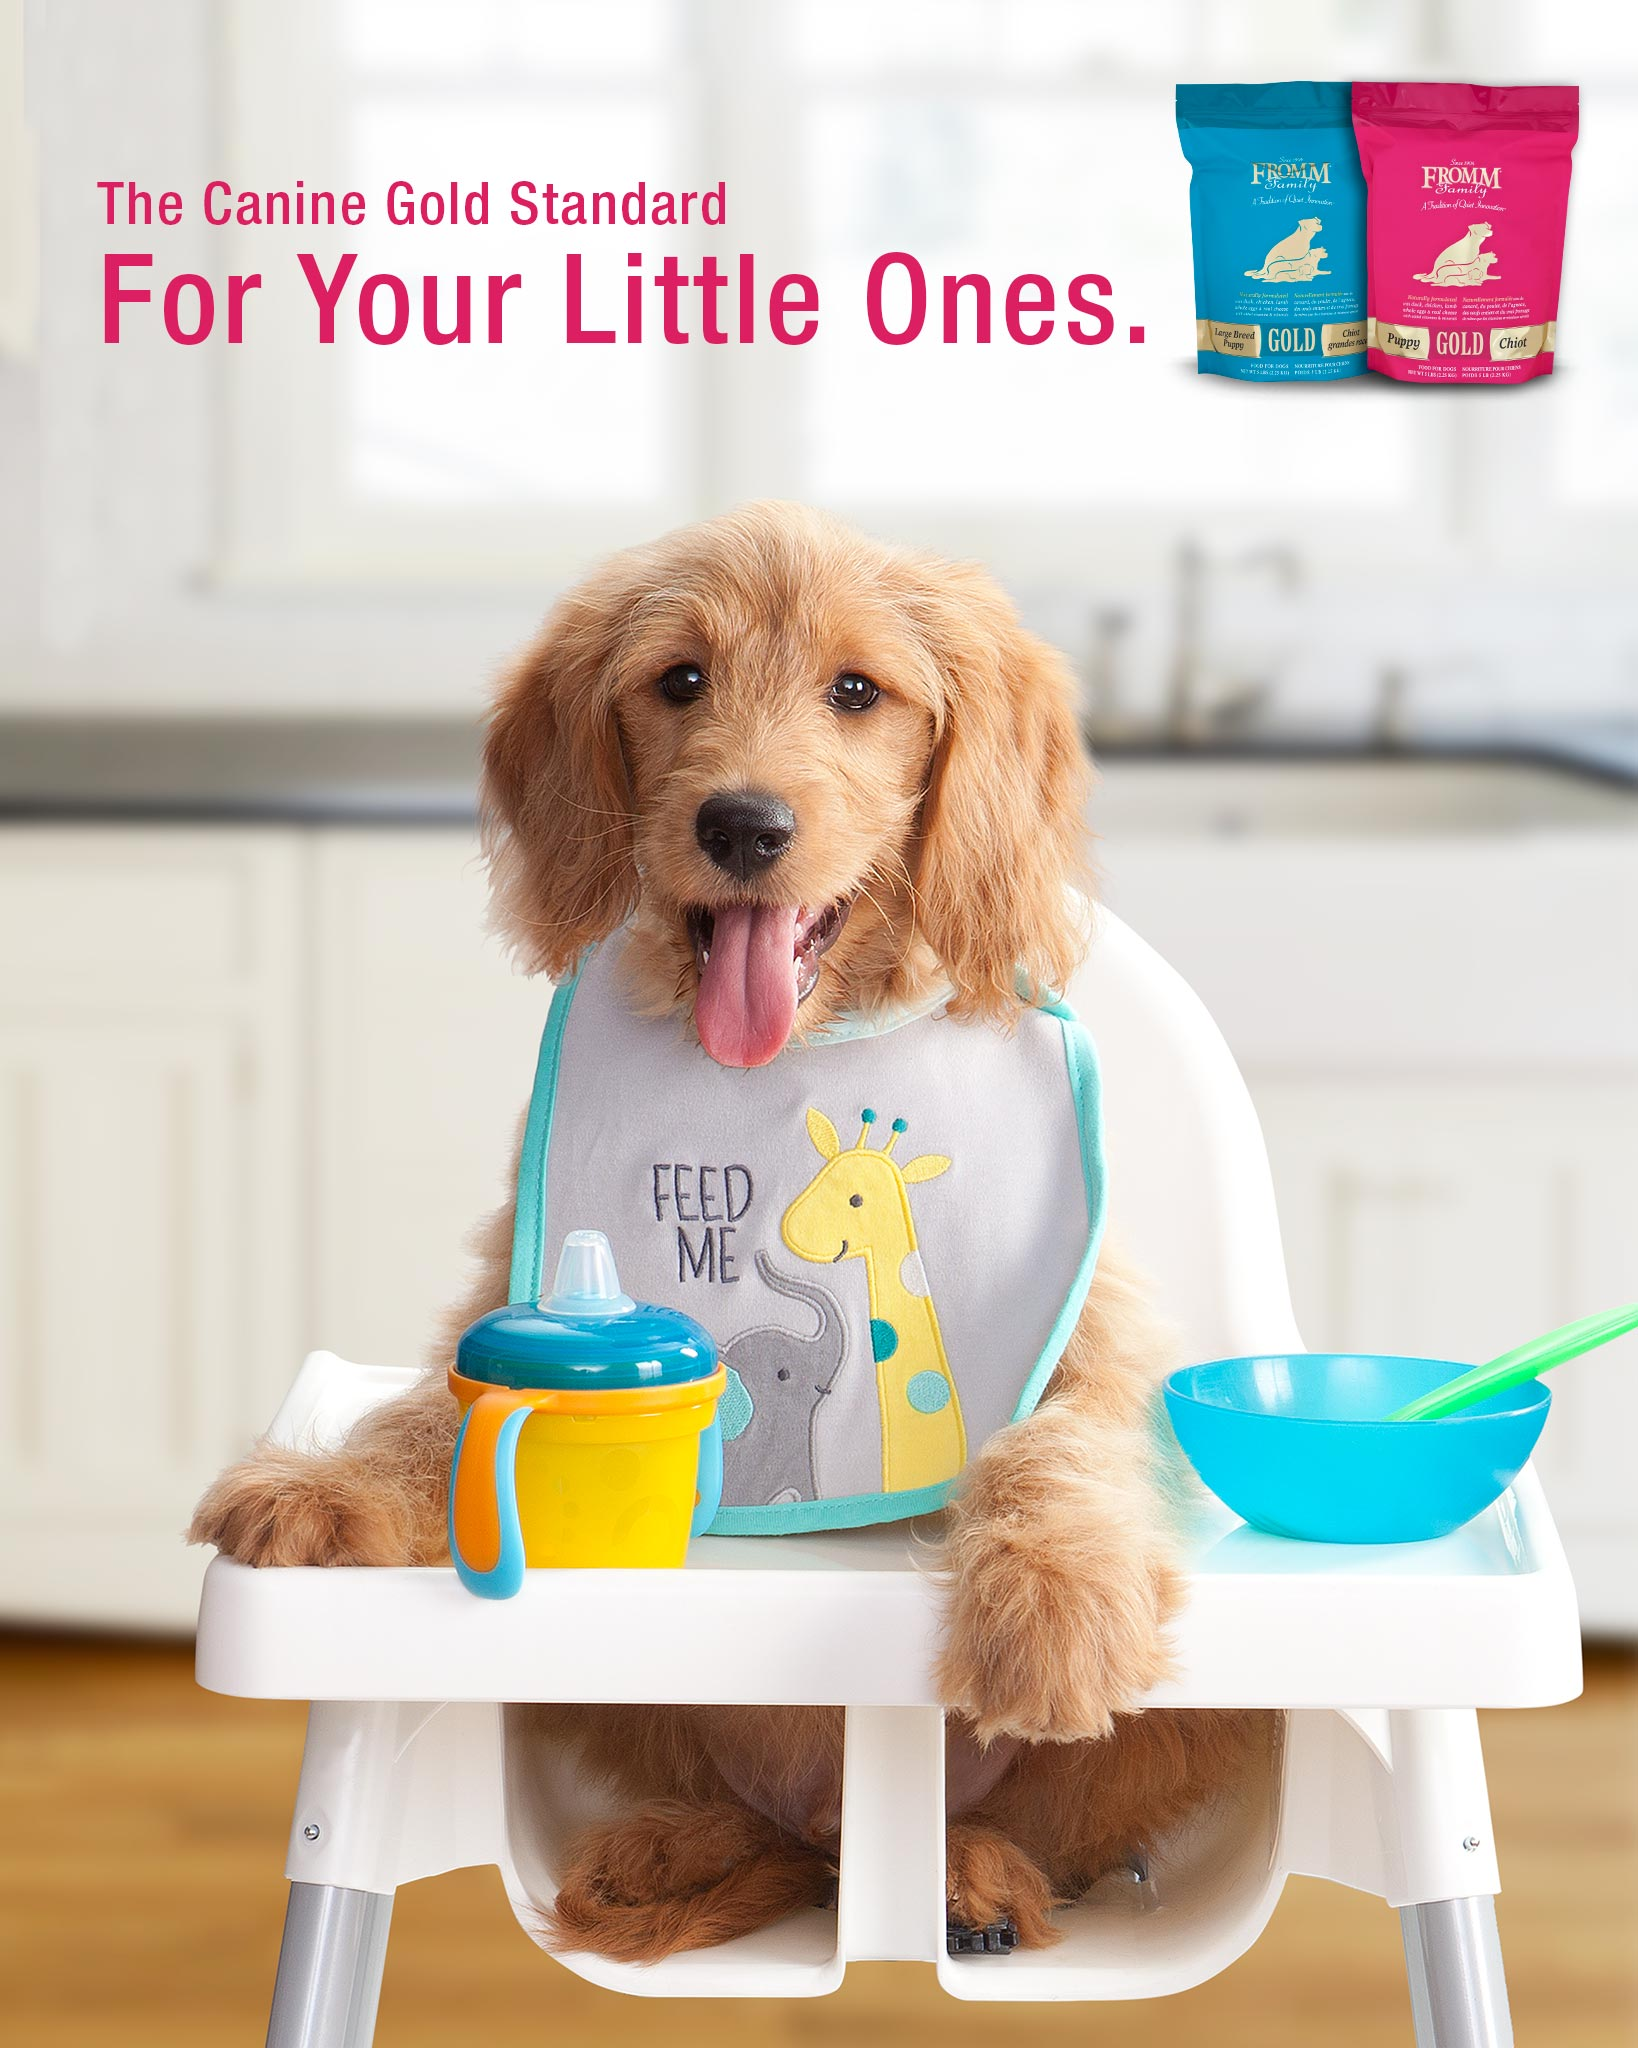 dog high chair comfortable reading small space puppy gold food fromm family foods